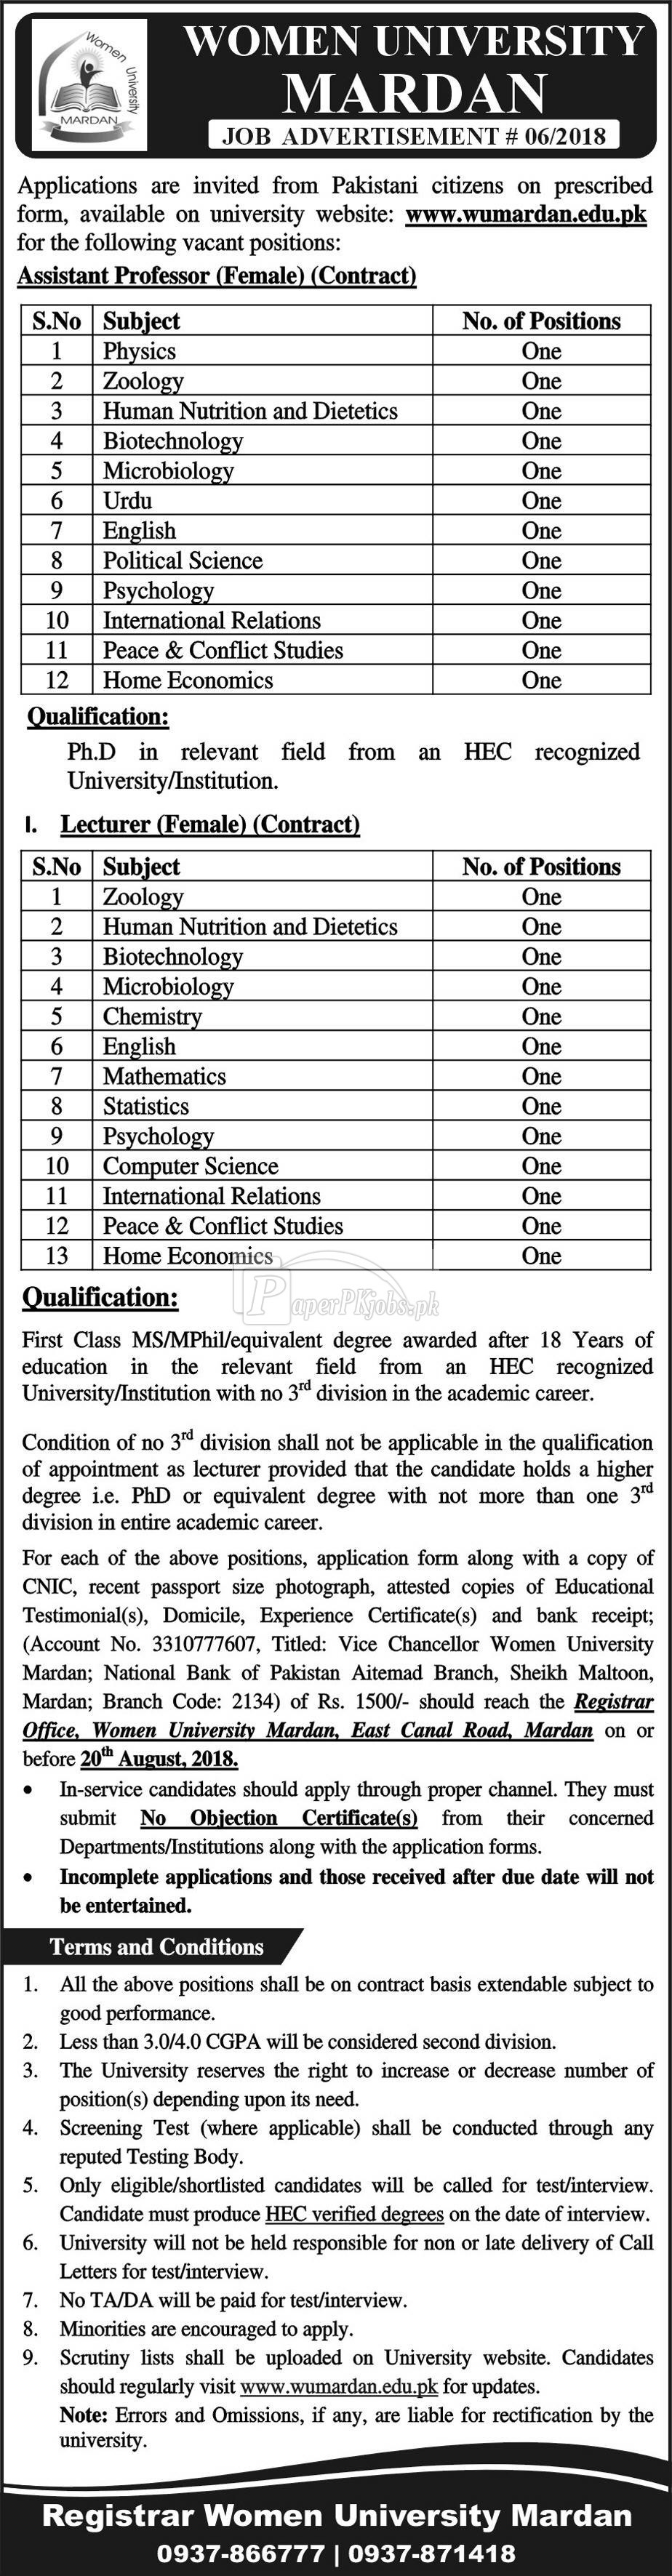 Women University Mardan Jobs 2018